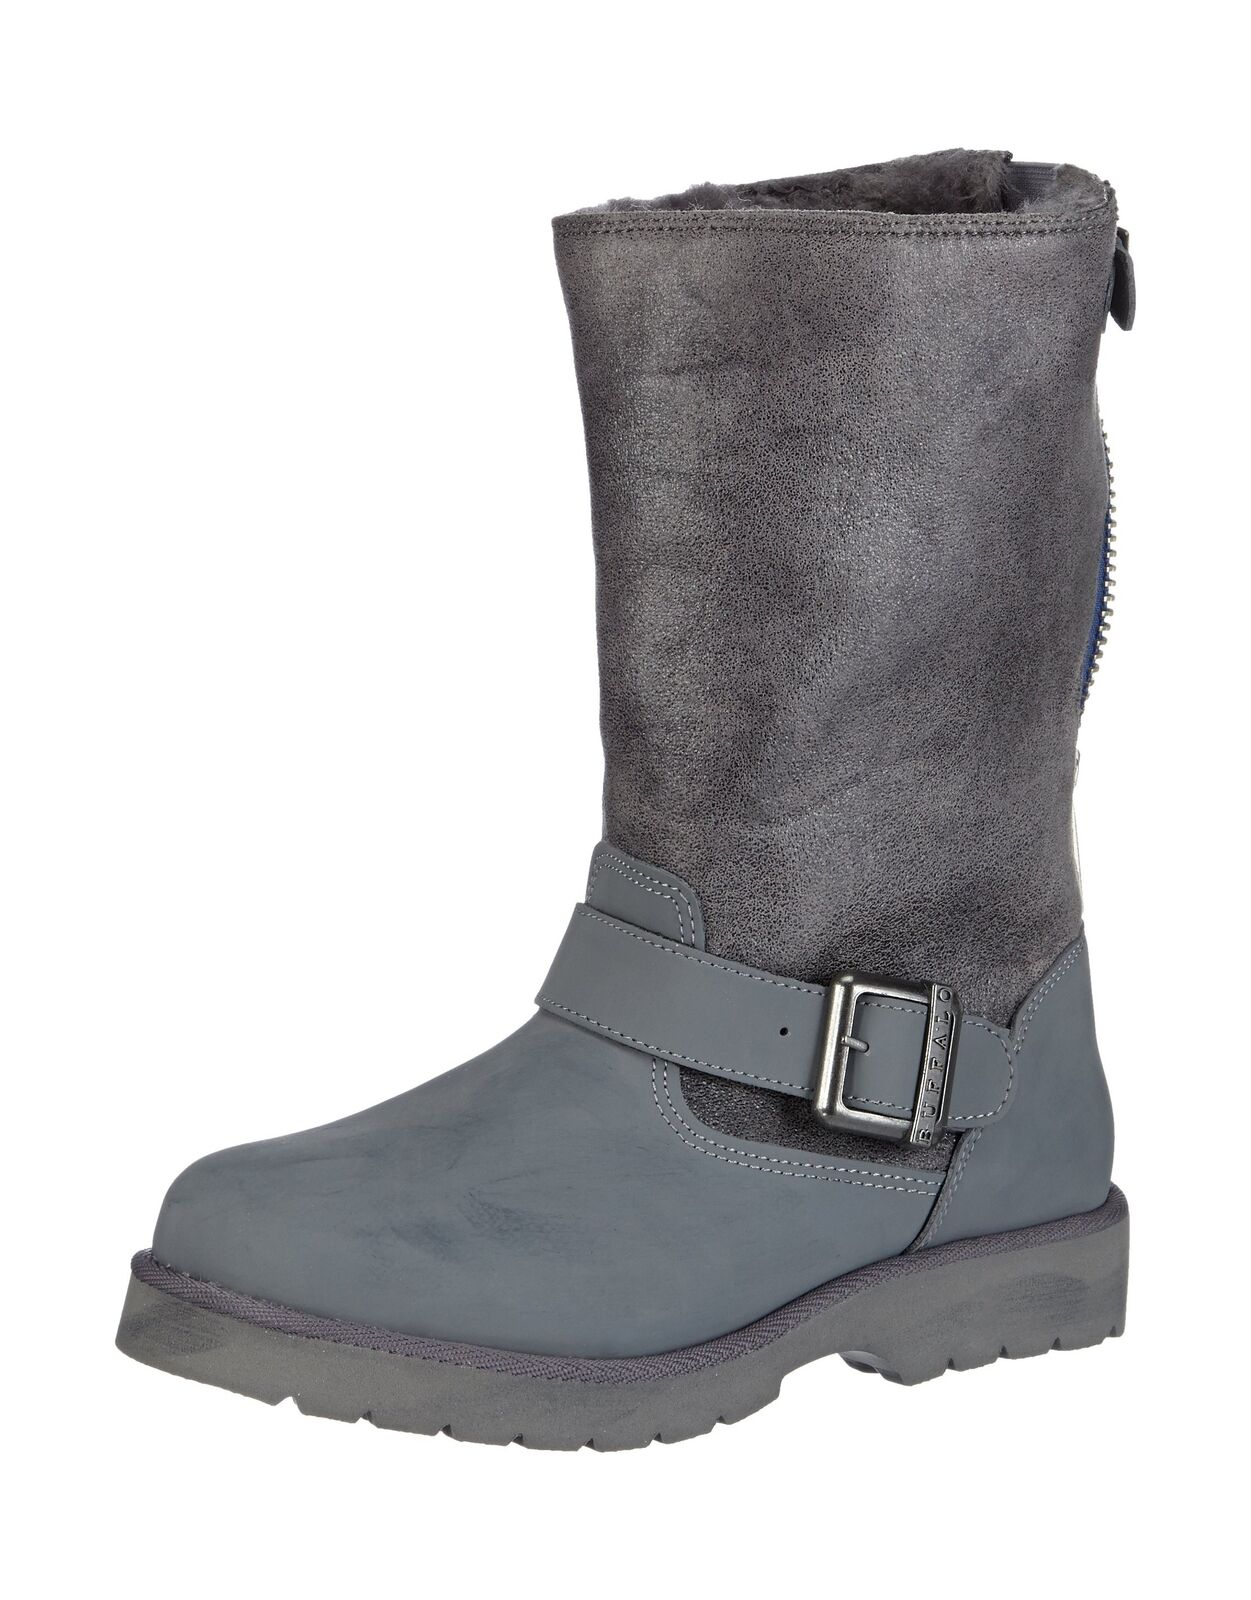 Buffalo 12844 Action Nubuck Hedosa, Women's Boots Grey (Grey299) 4.5 UK